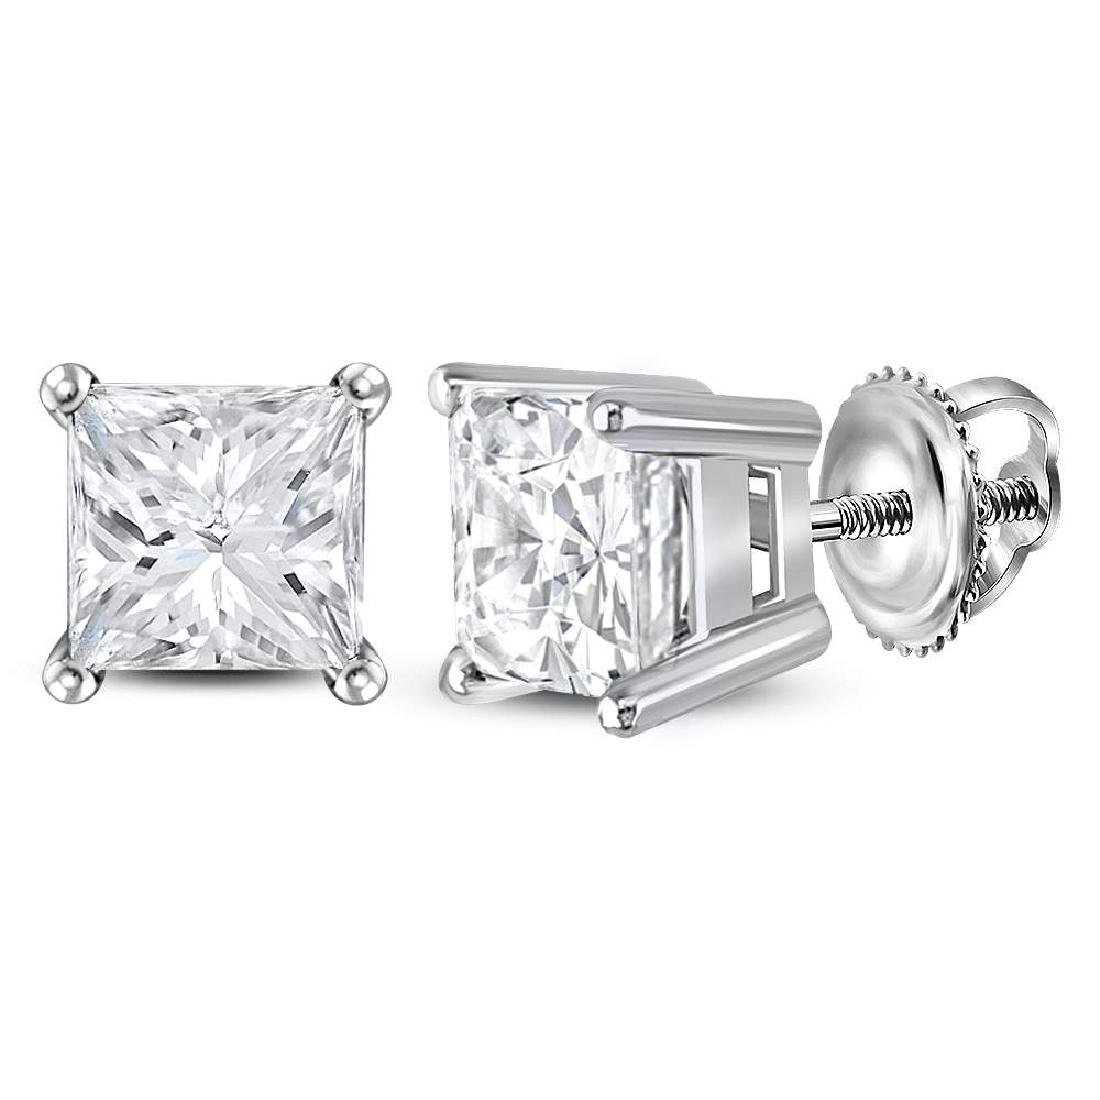 1.46 CTW Princess Diamond Solitaire Stud Earrings 14KT